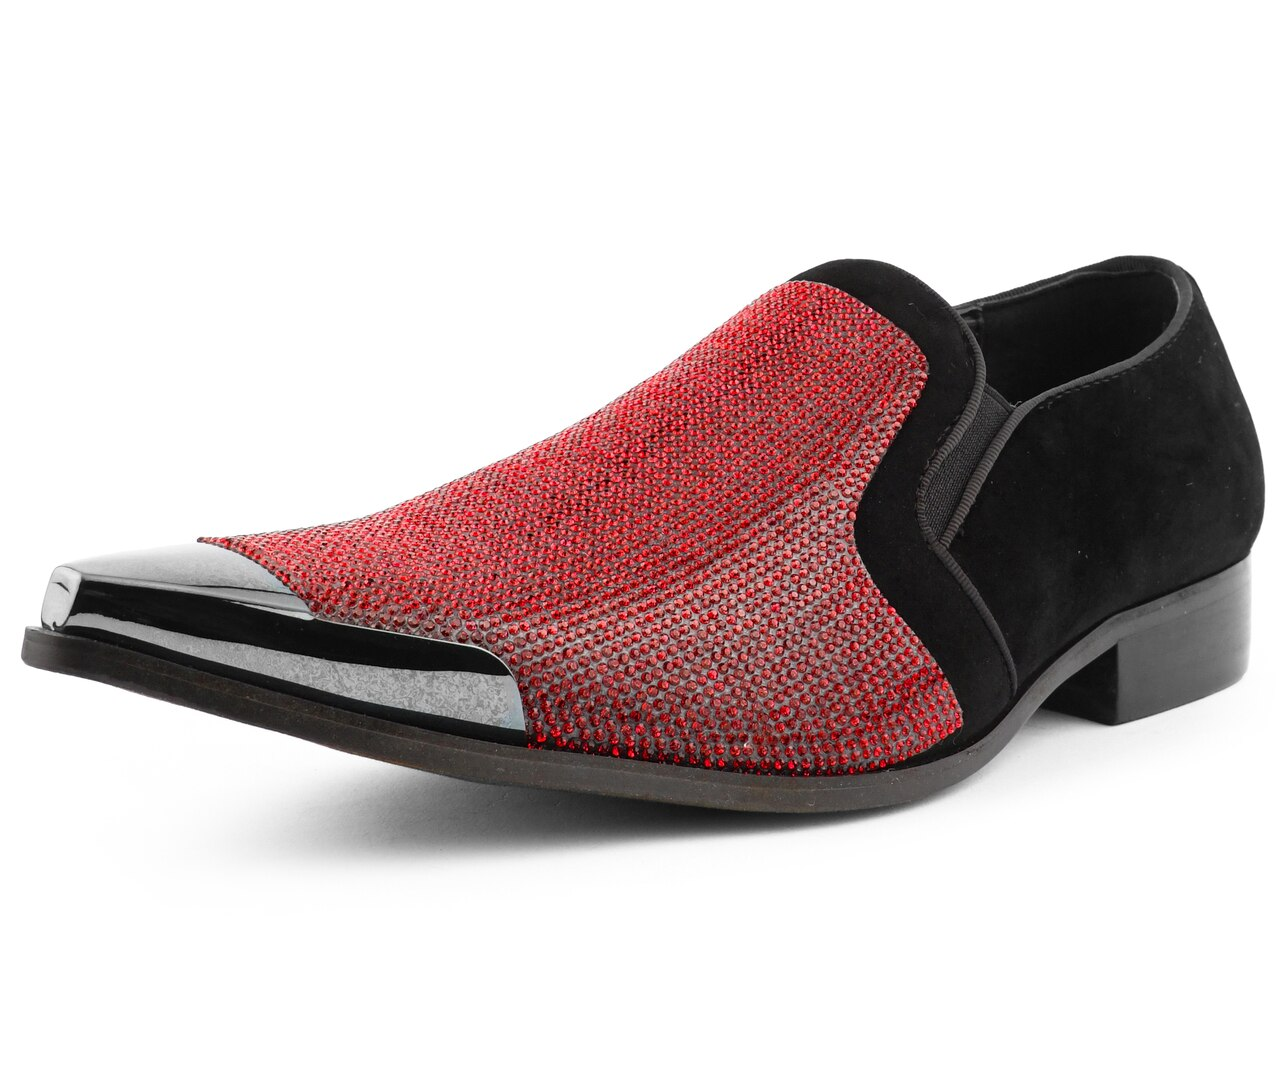 Men Dress Shoes-Dezzy-Red - Church Suits For Less